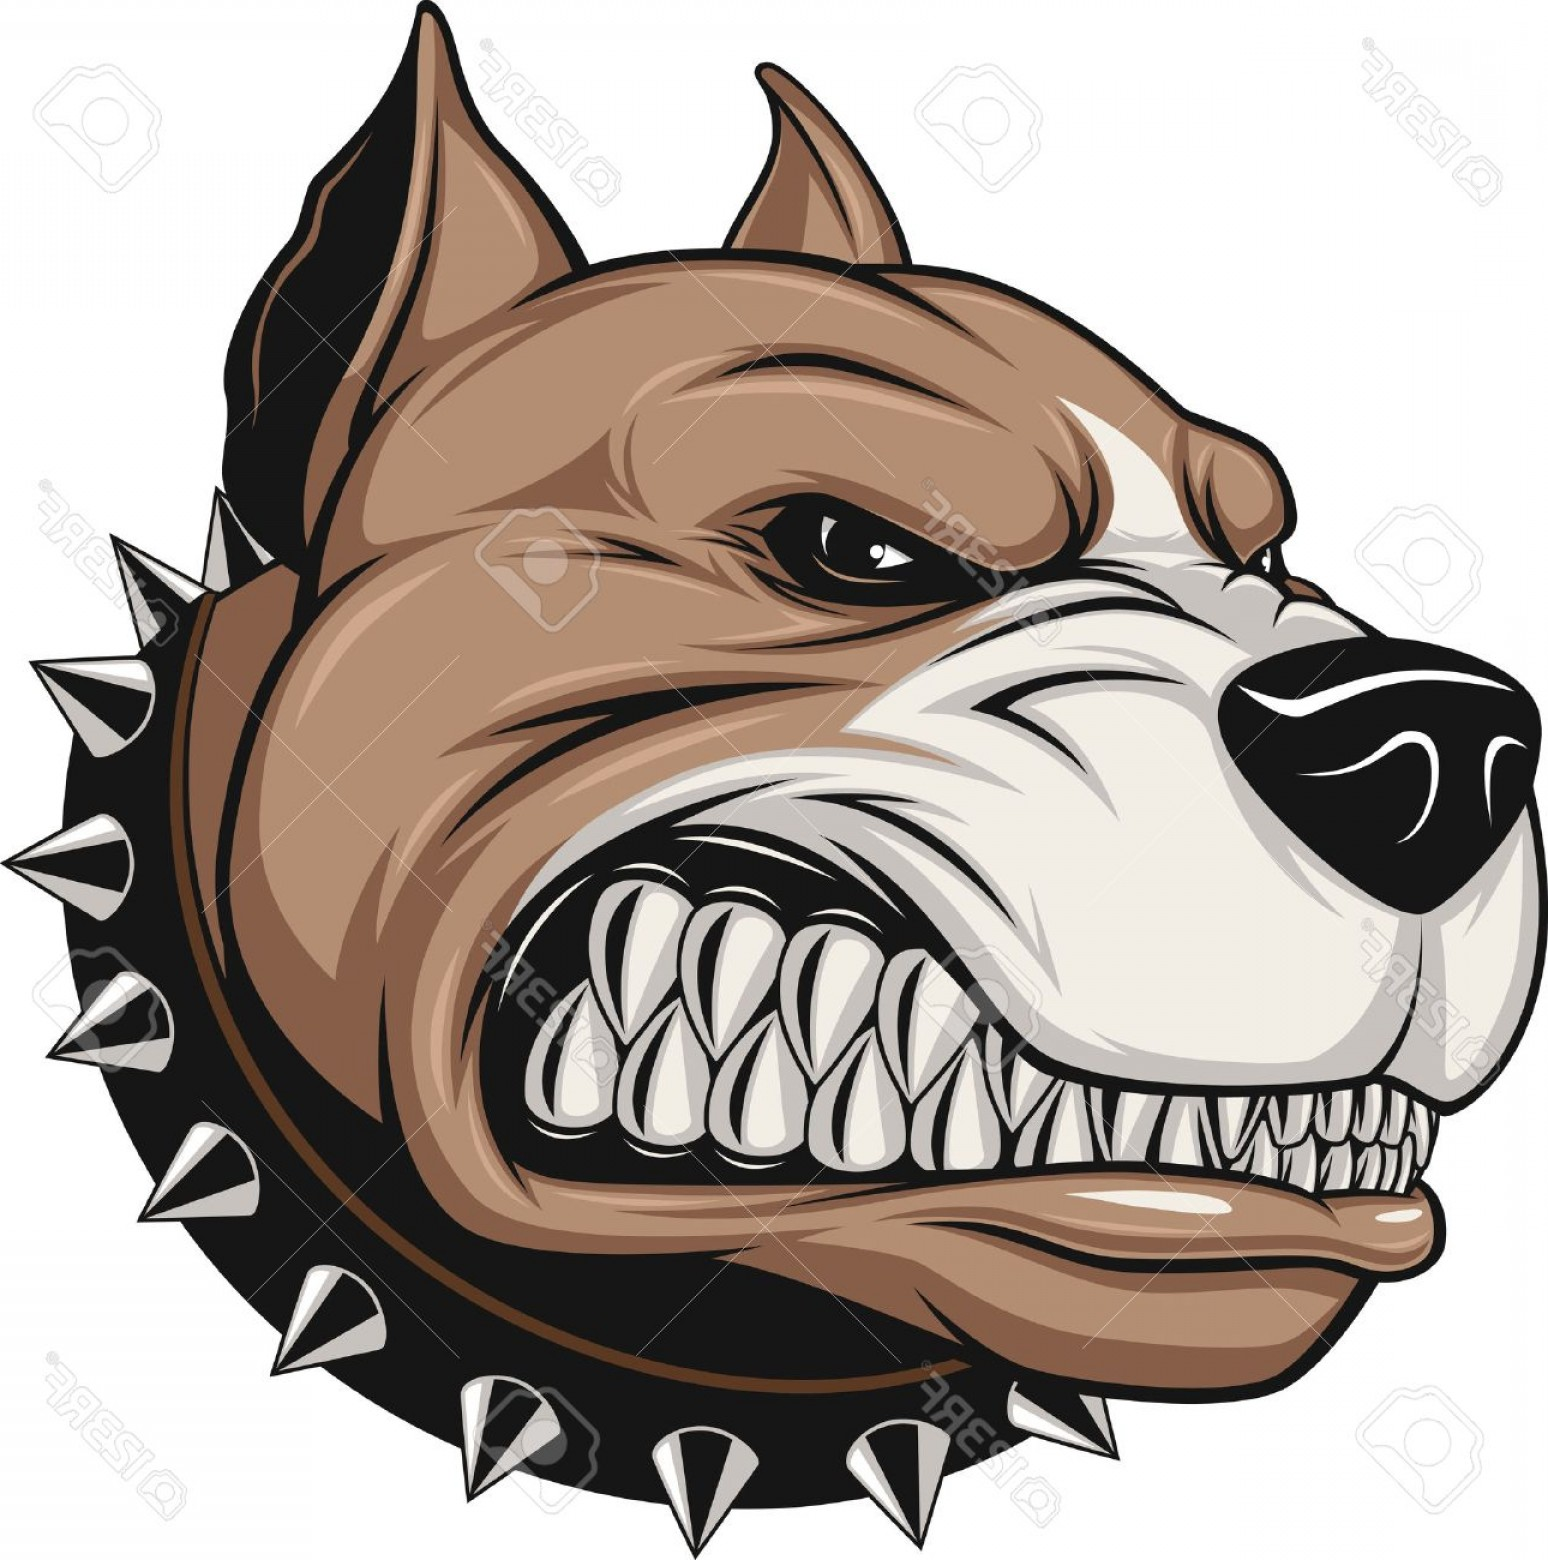 Dog Mascot Vector: Photostock Vector Vector Illustration Angry Pitbull Mascot Head On A White Background